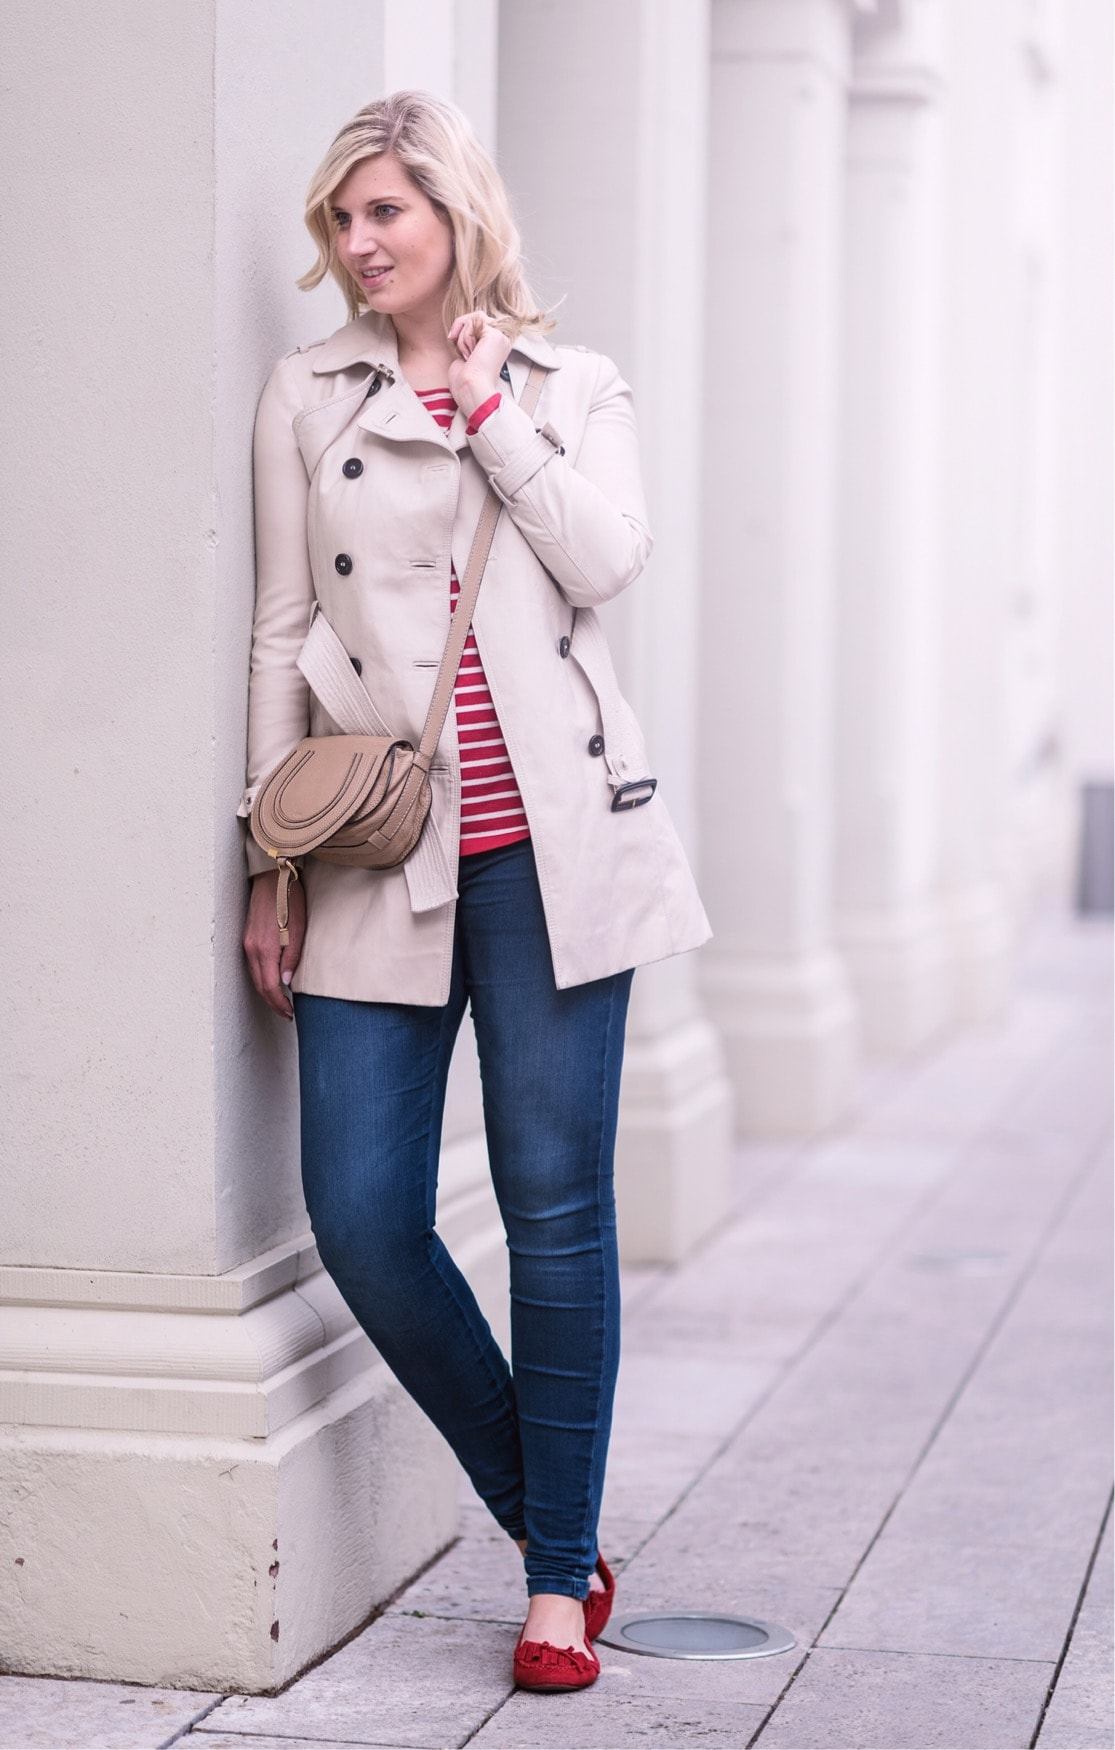 OUTFIT: Classic Trenchcoat & Red Stripes